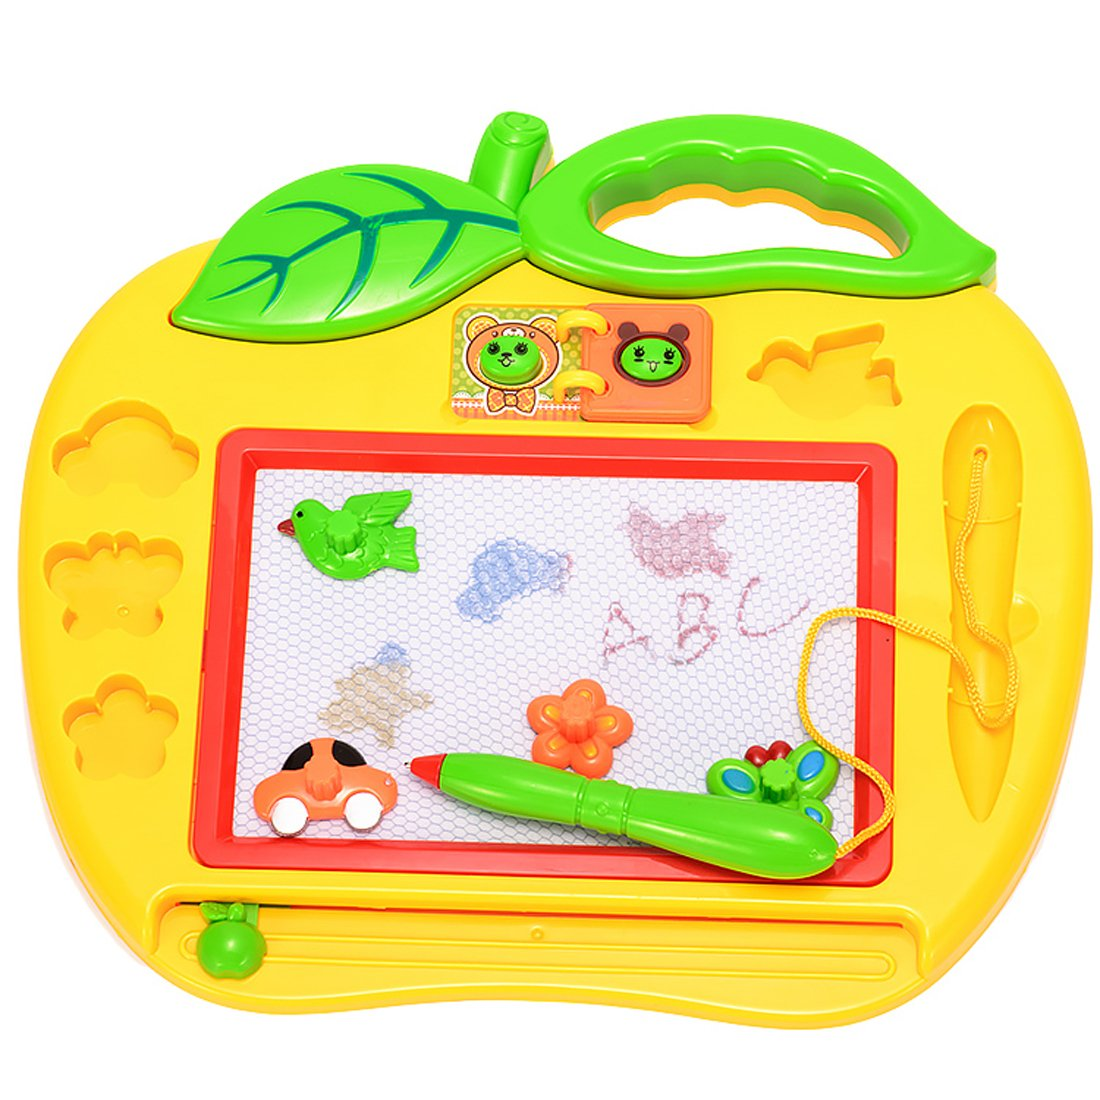 Caszel Color Sketchpad Magnetic Drawing Board for Kids/Toddlers with 3 Stamps and 1 Pen Doodle/Scribble/Writing/Draft/Sketch